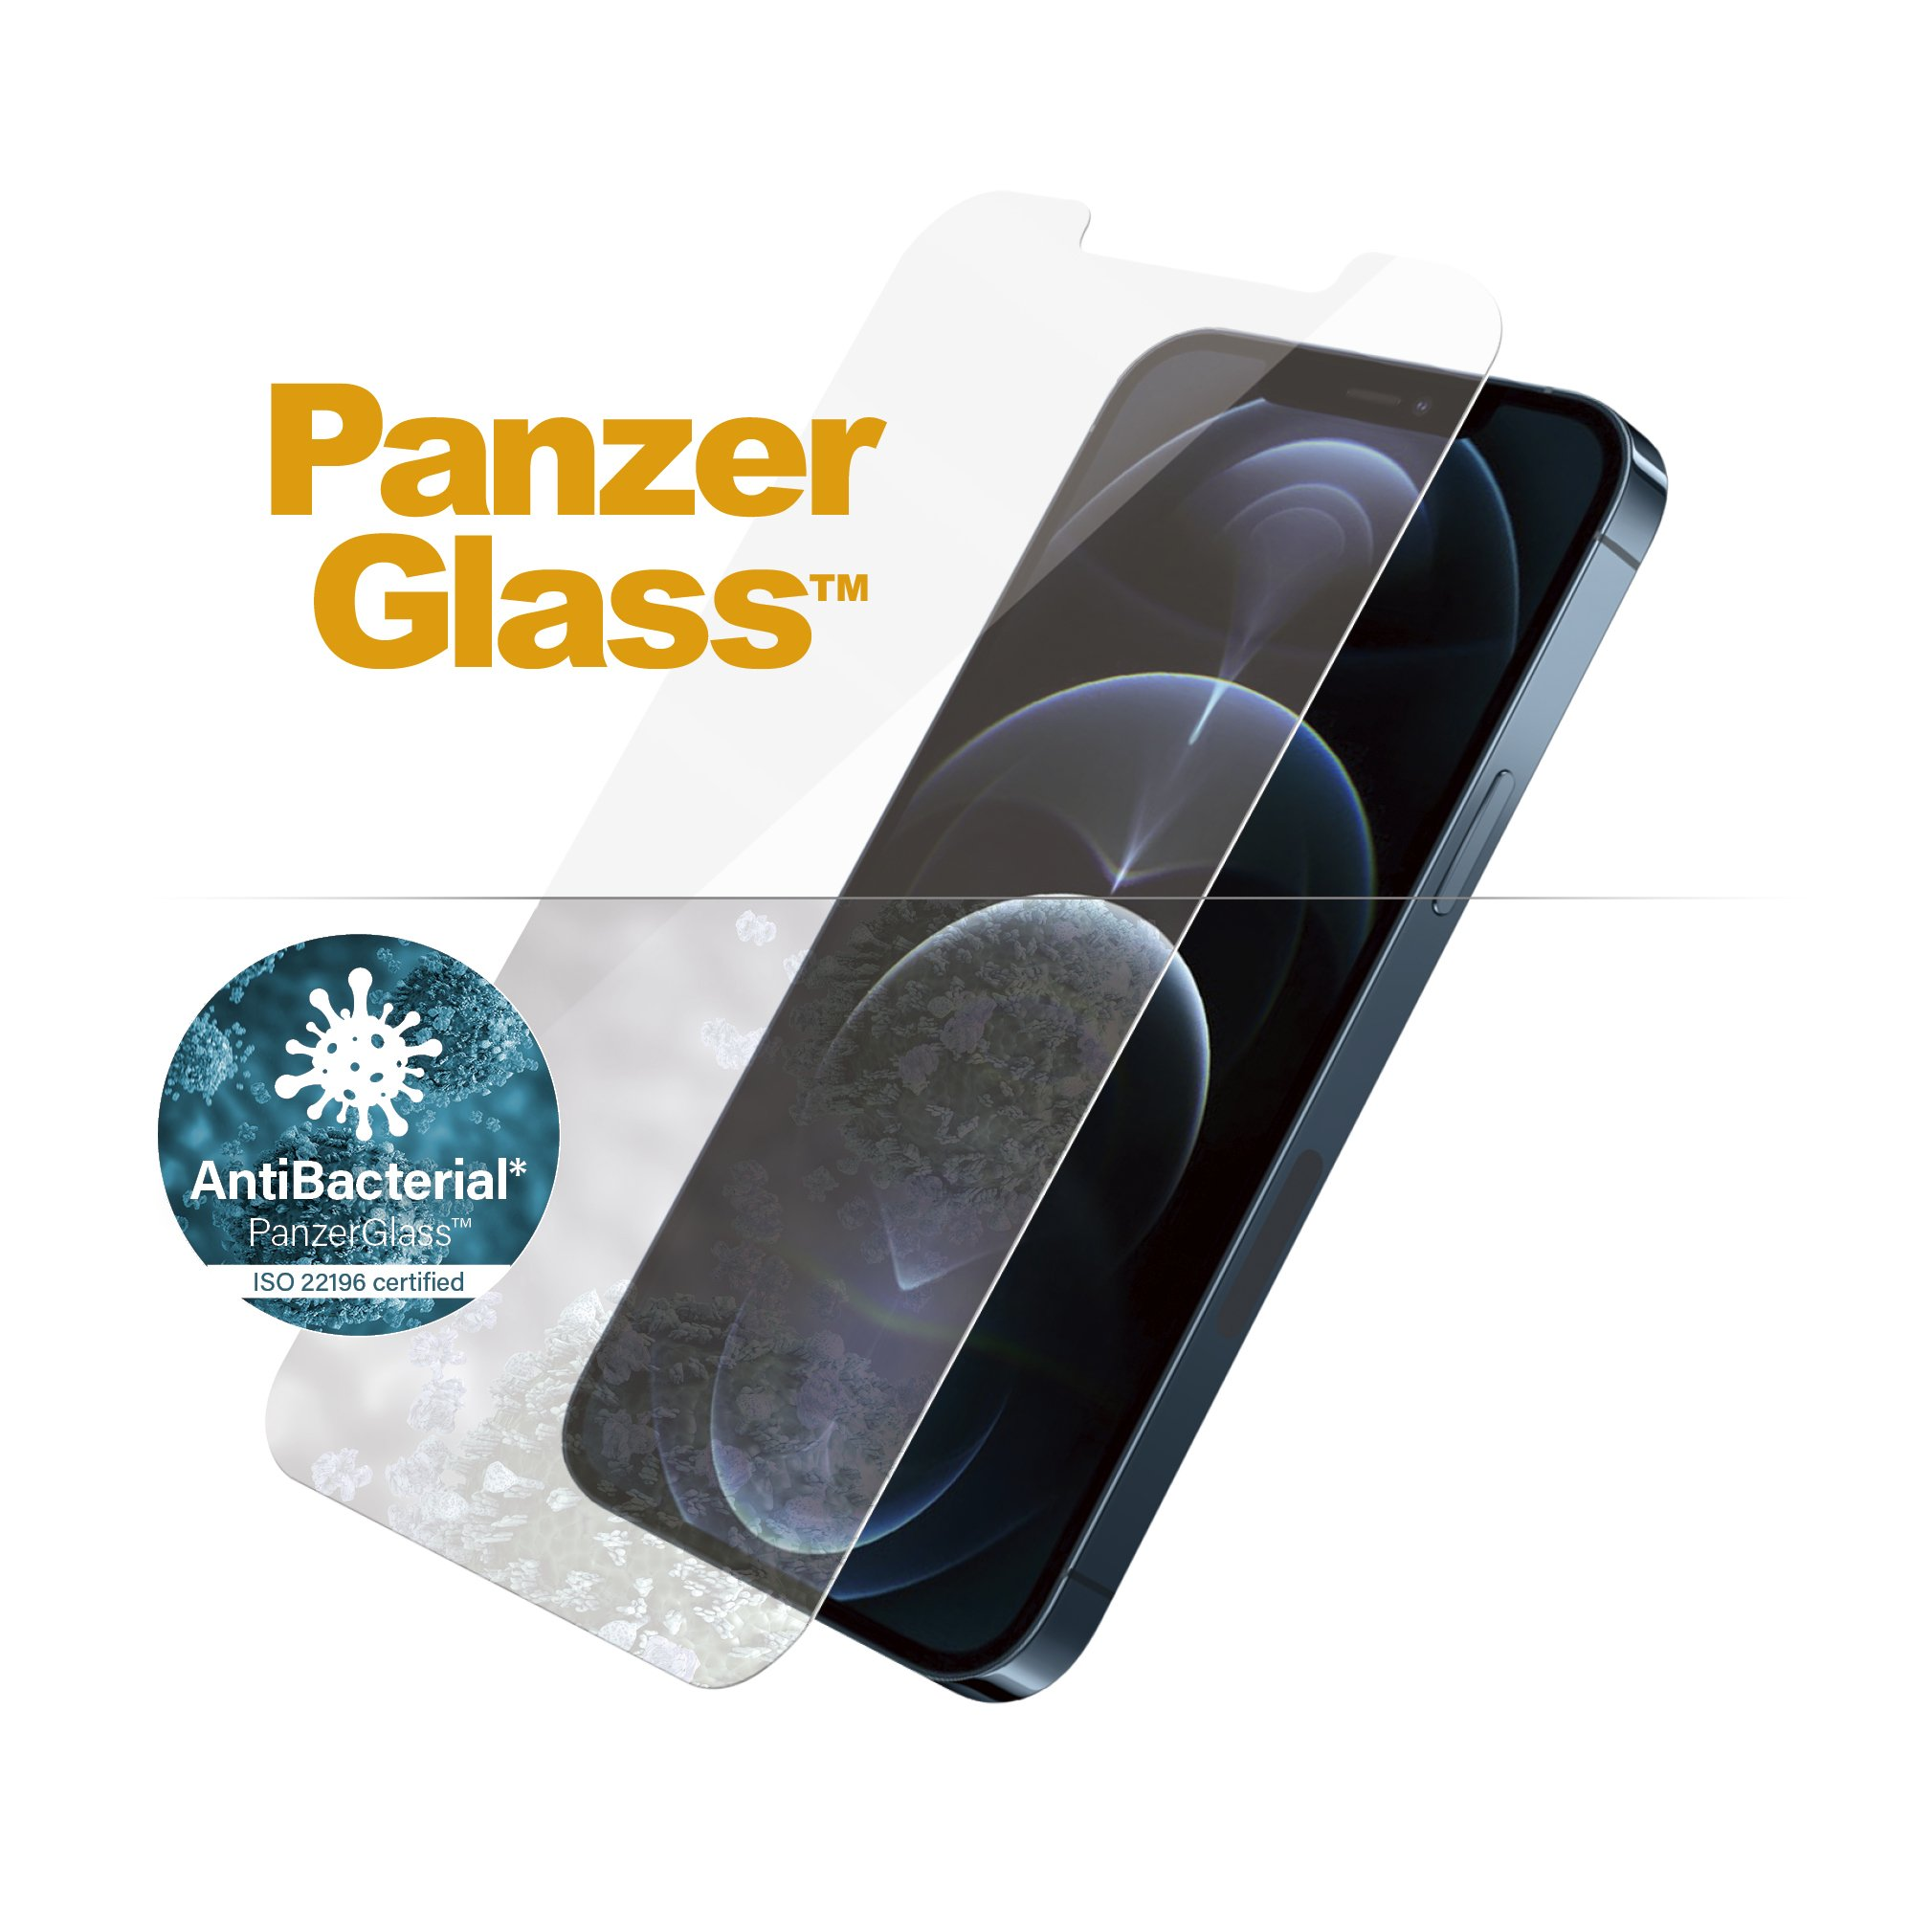 PanzerGlass iPhone 12 Pro Max Screen Protector - Standard Fit Tempered Glass - Clear